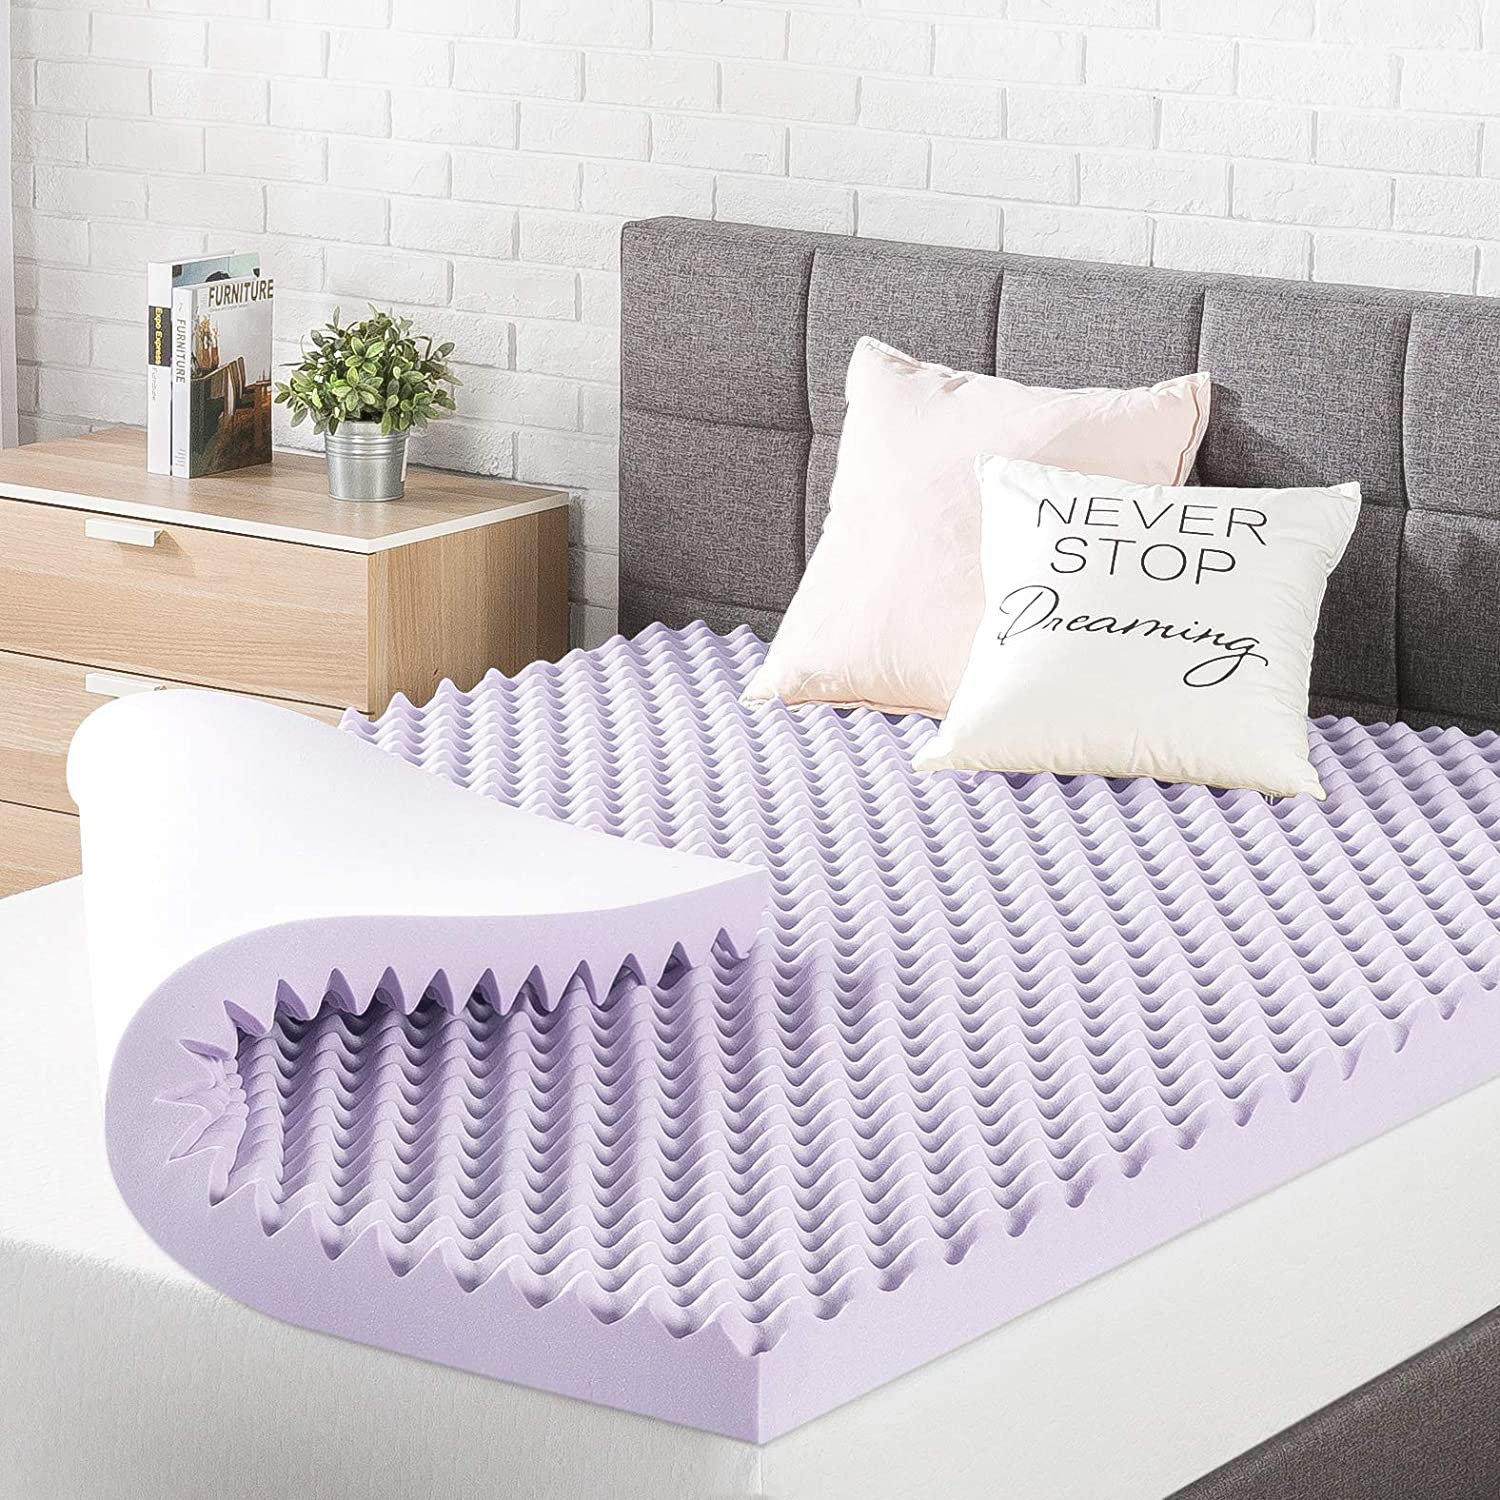 Best Price Mattress 3 Inch Egg Crate Memory Foam Topper, Mattress Pad with Soothing Lavender Infusion, CertiPUR-US Certified, Queen: Furniture & Decor